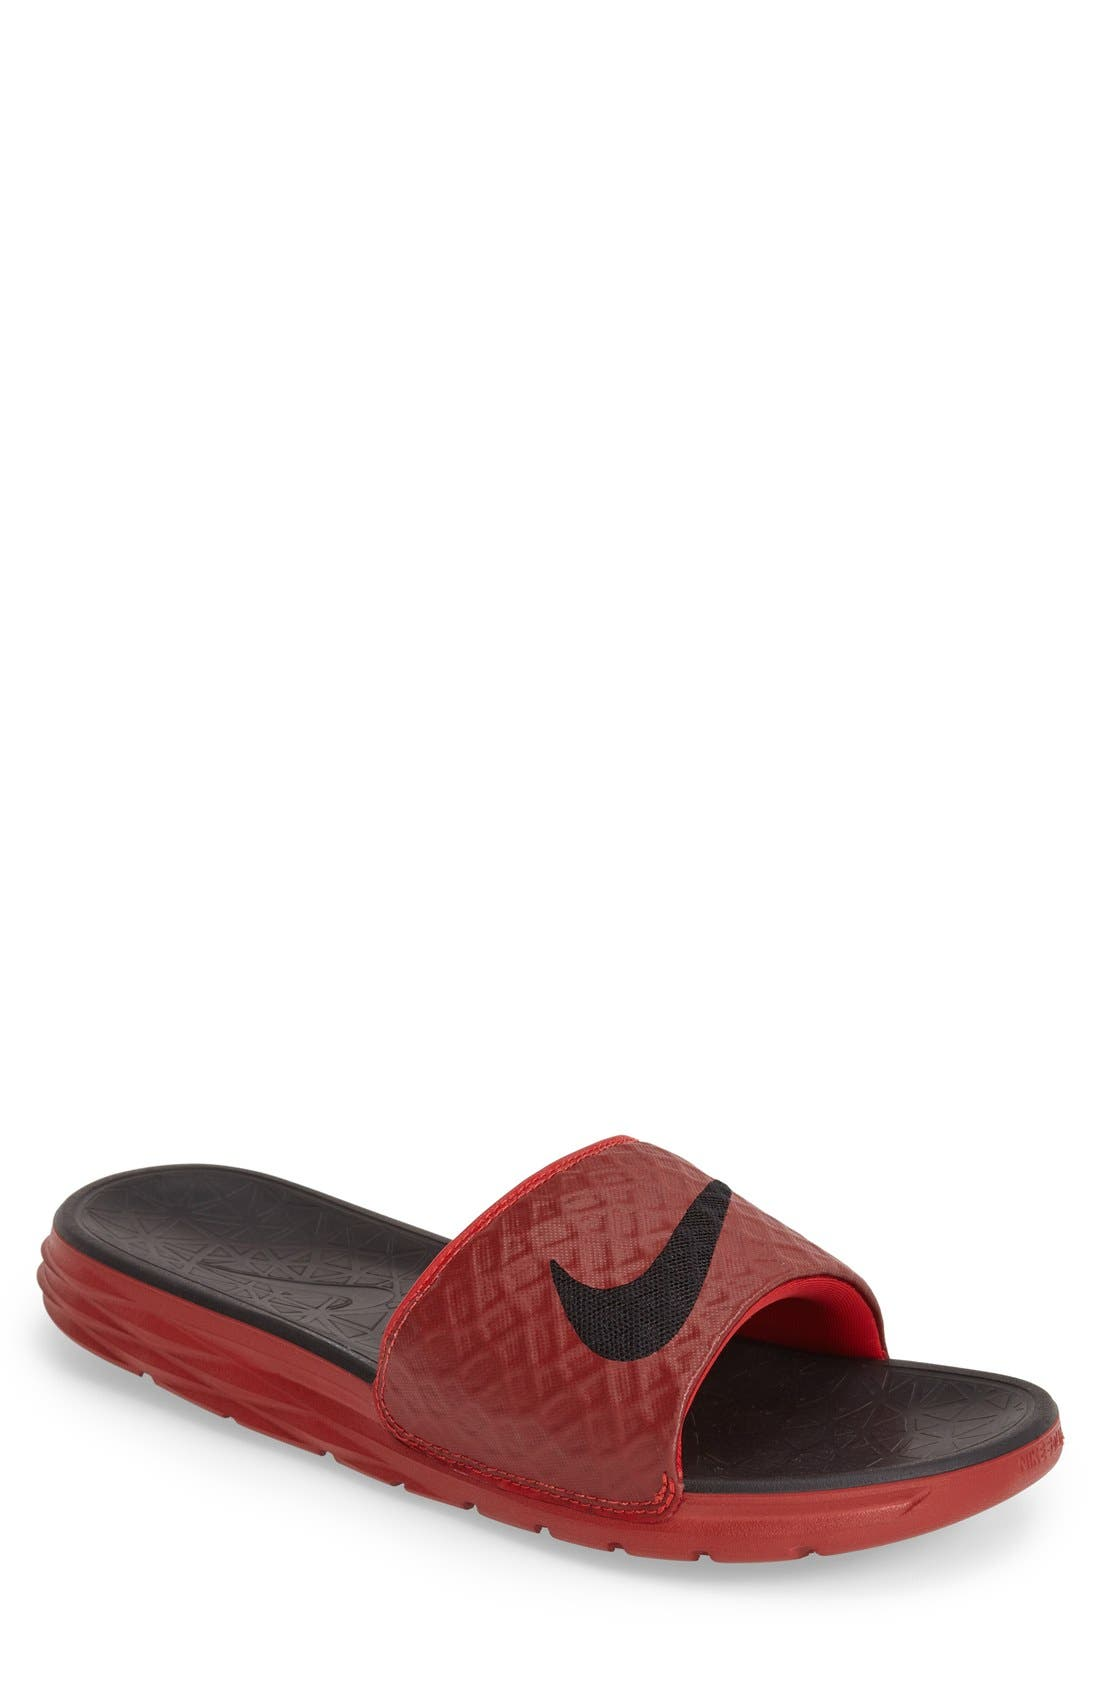 'Benassi Solarsoft 2' Slide Sandal,                         Main,                         color, University Red/ Black